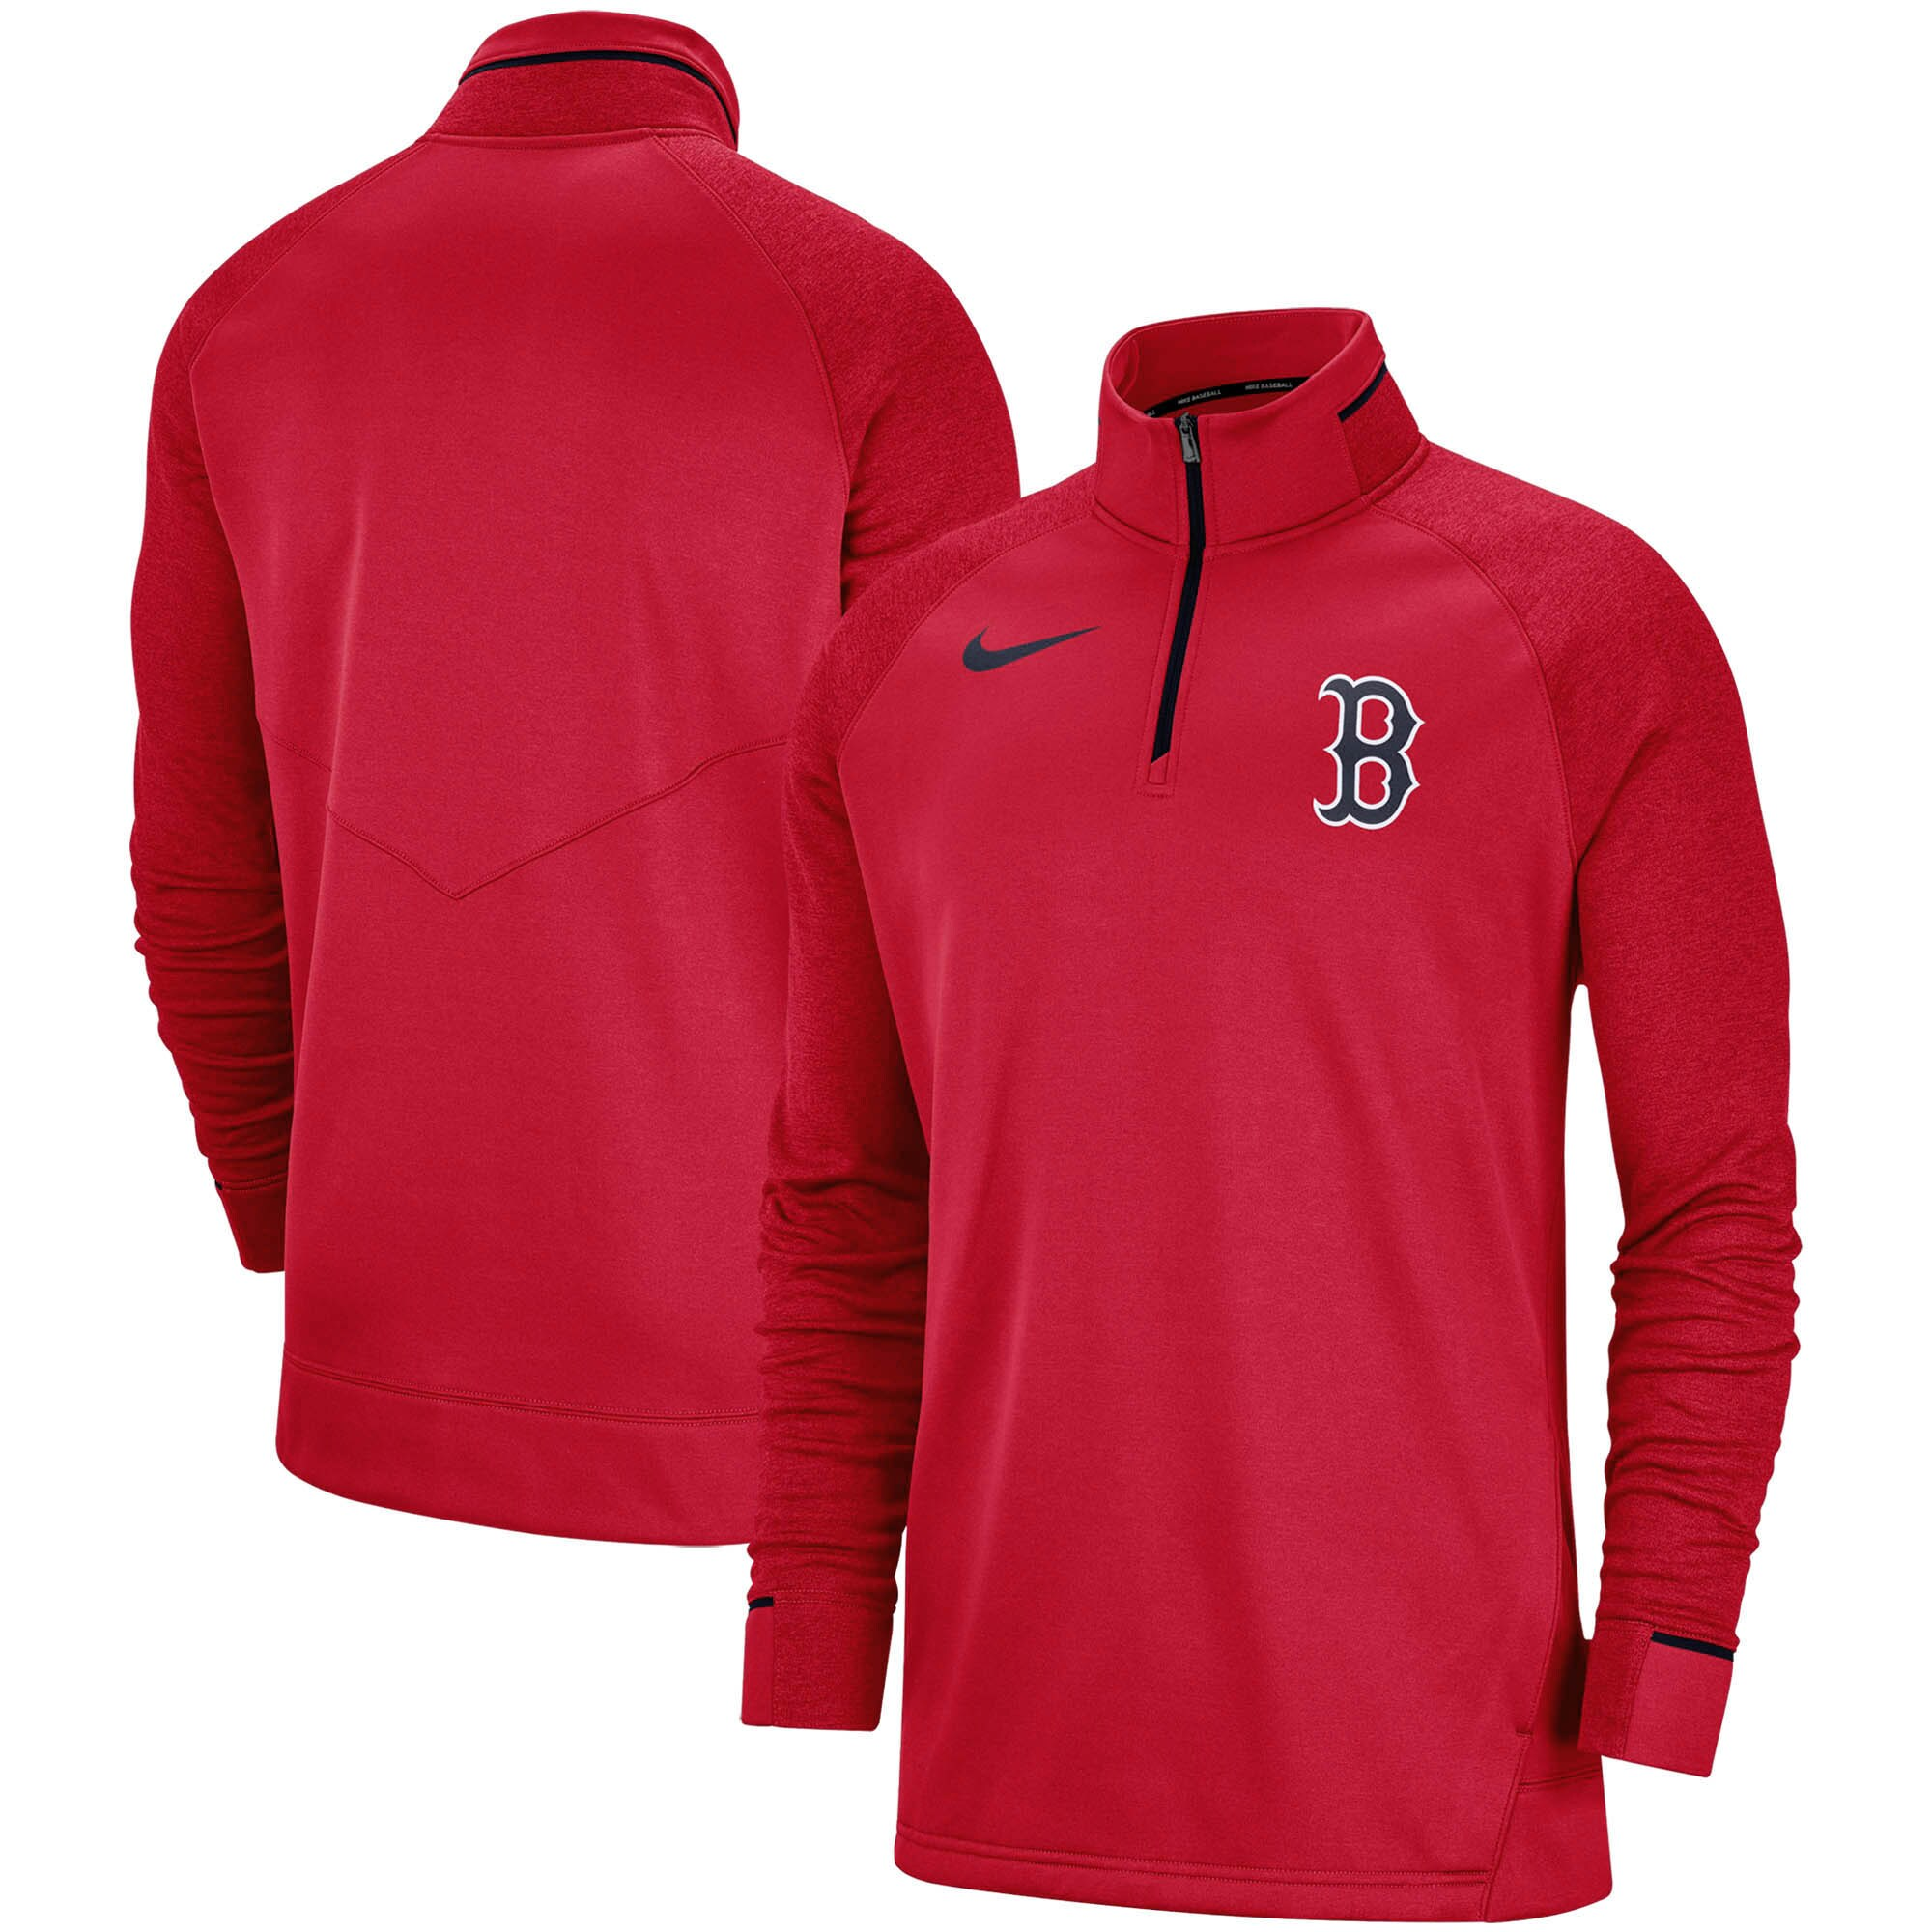 Boston Red Sox Nike Elite Game Performance Raglan Sleeve Quarter-Zip Pullover Jacket - Red